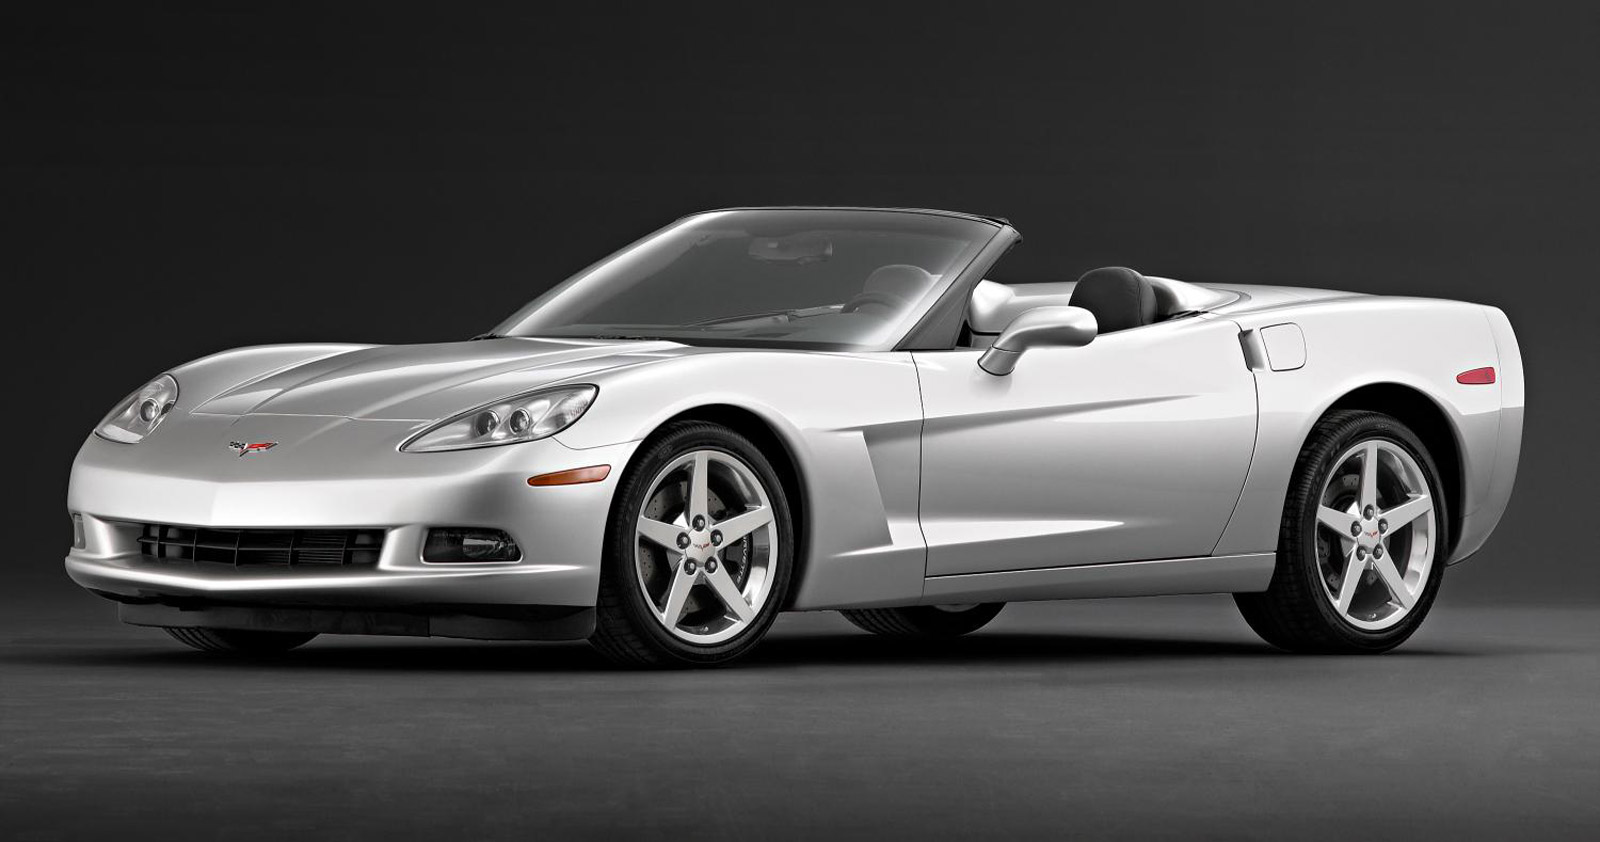 Chevy Corvette And Cadillac Cts Involved In Latest Gm Recall